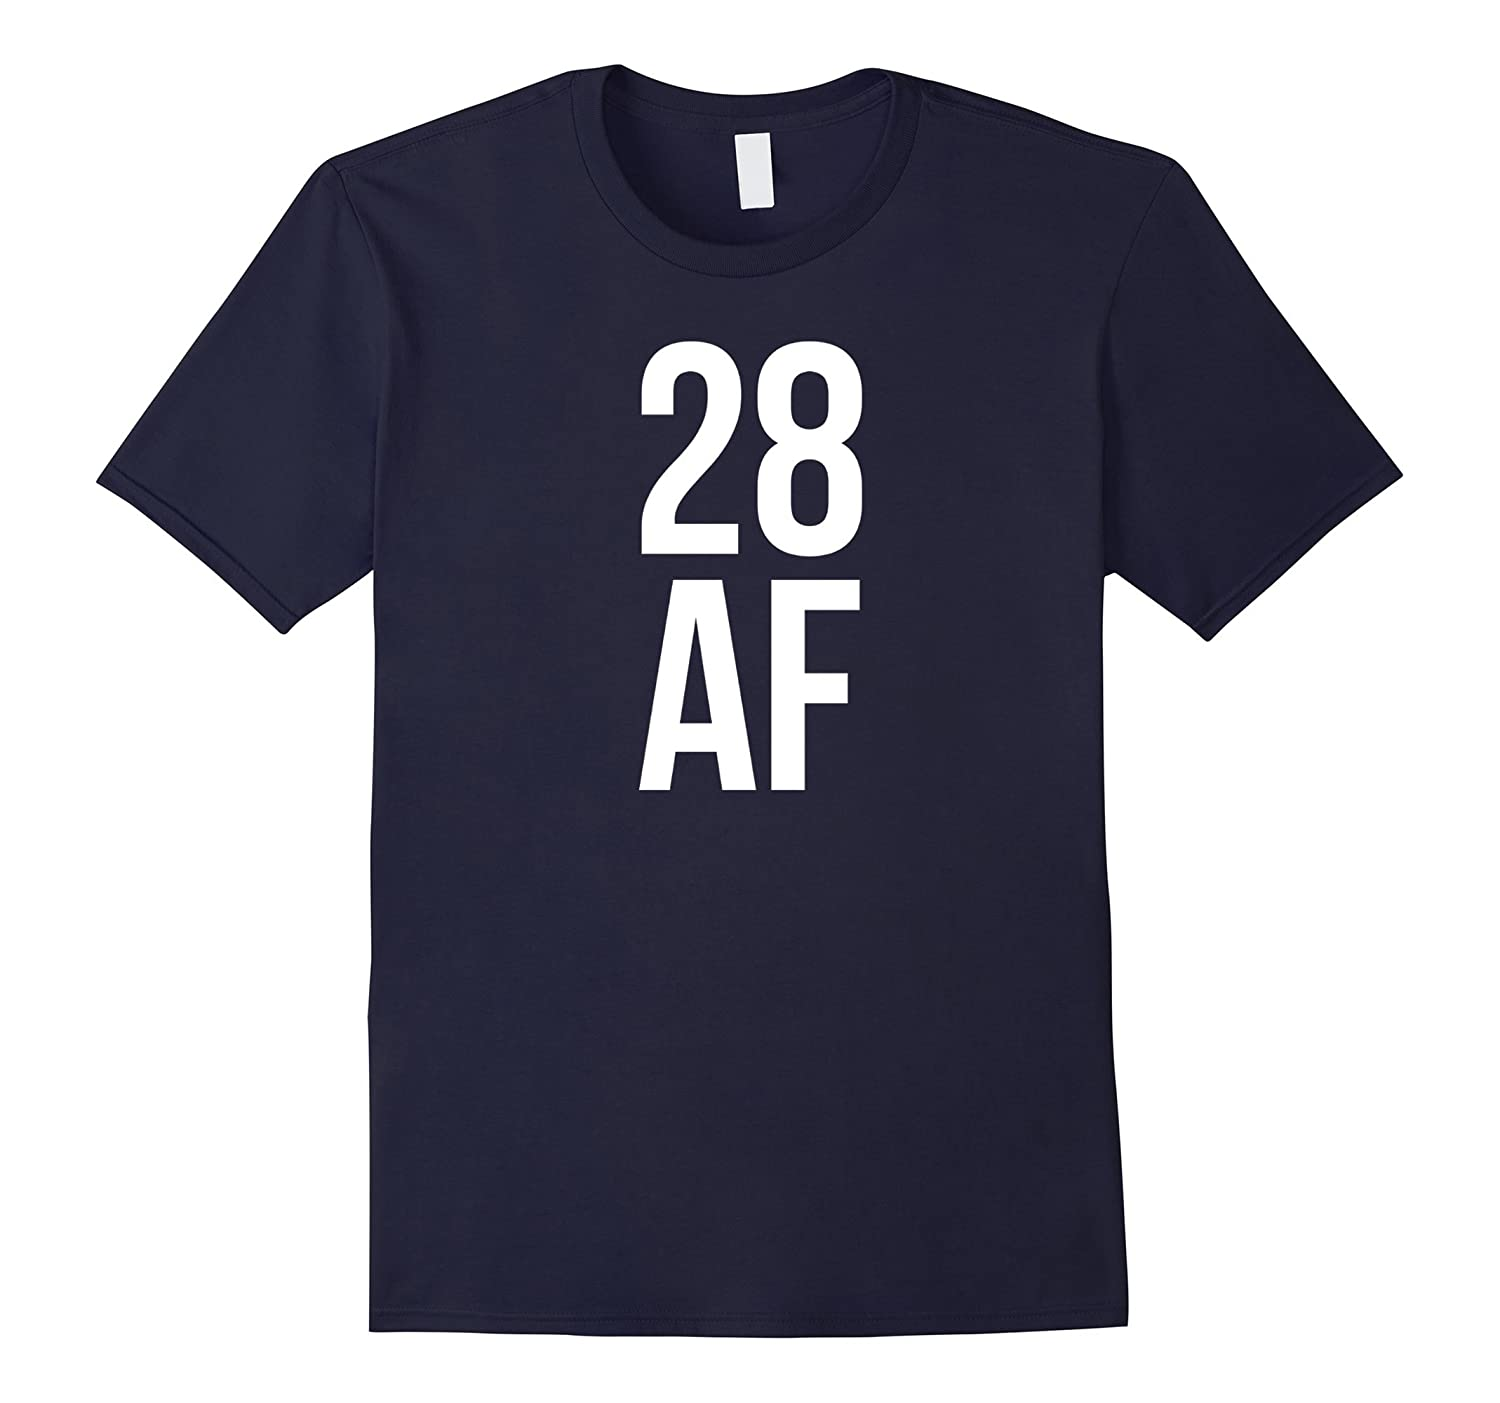 28 AF Tshirt 28th Birthday Shirt Tee Top Mens Womens-TH